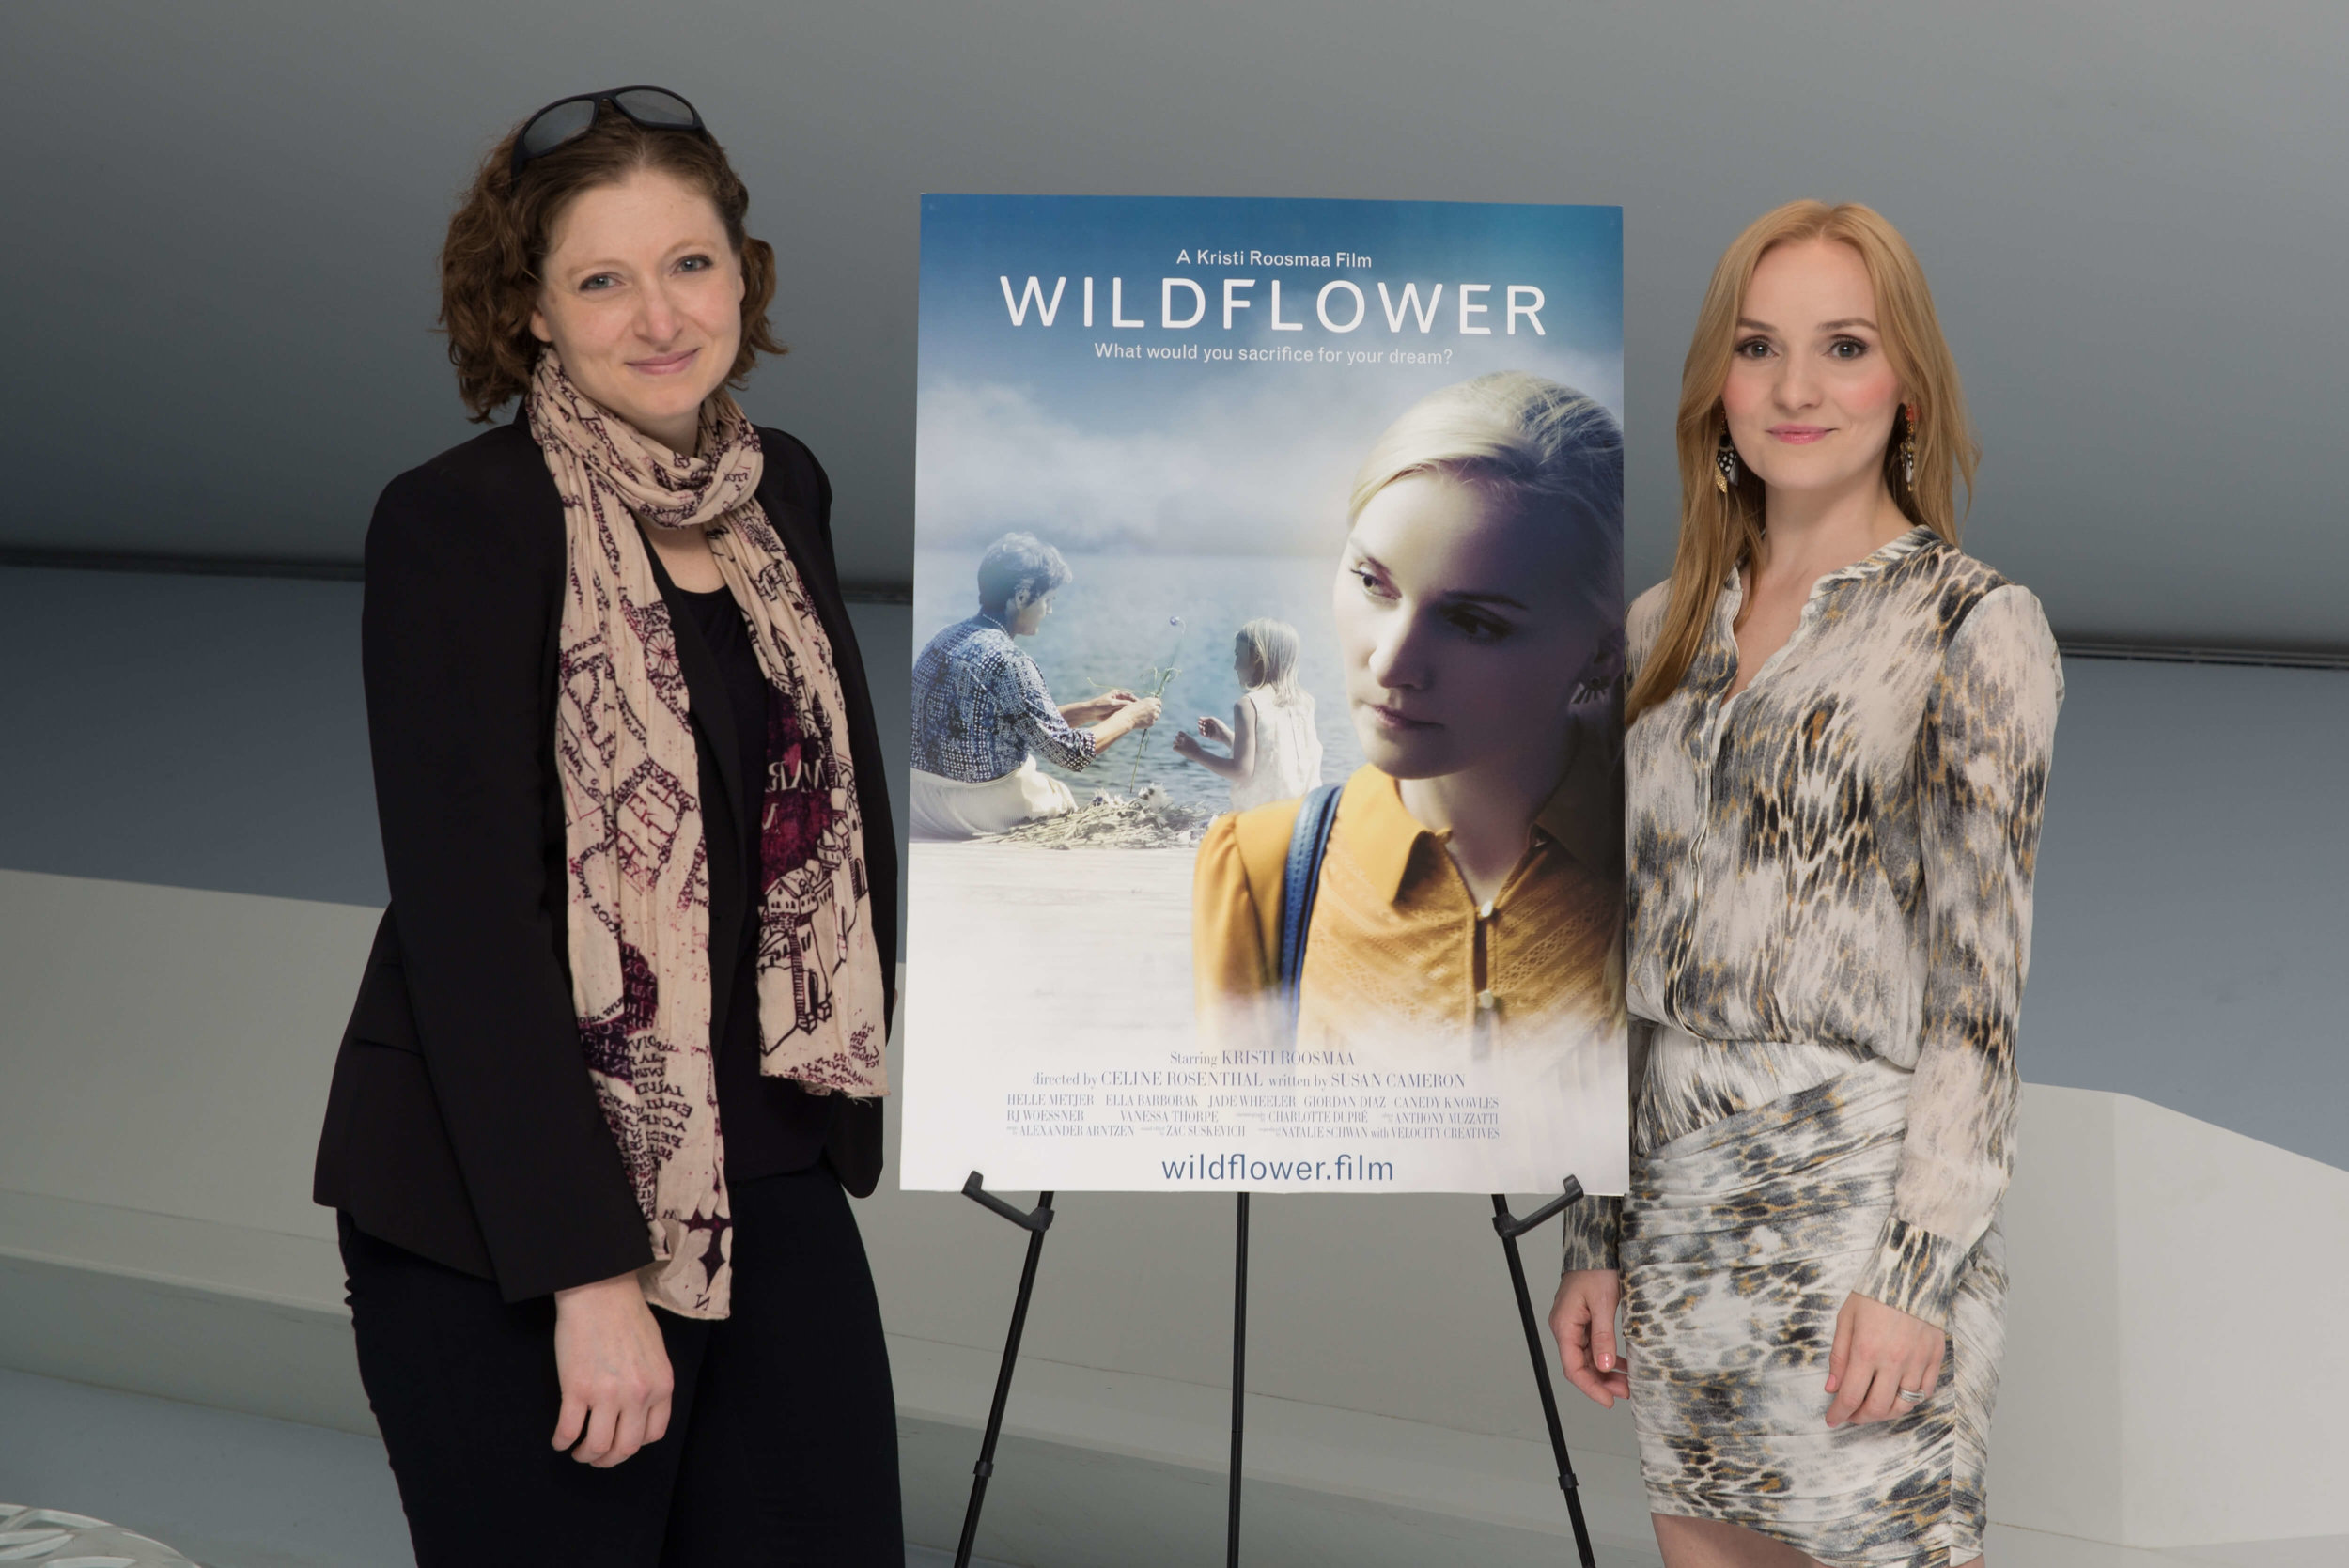 Wildflower is directed by Tony nominated producer and rising director Celine Rosenthal.